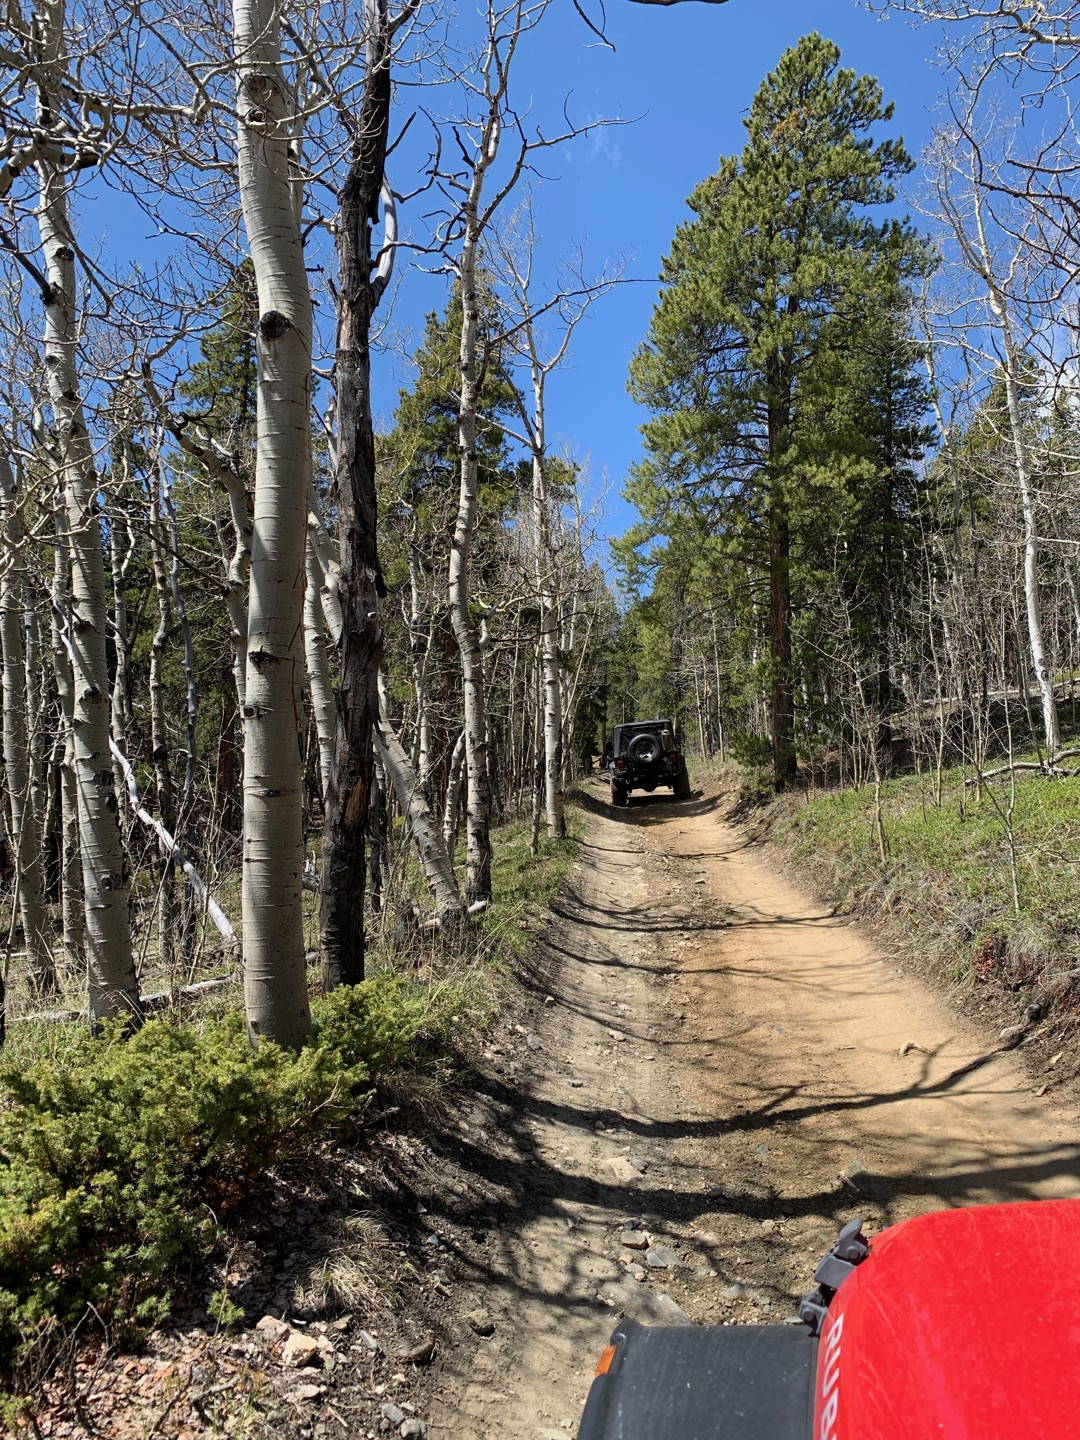 Trail Review: Slaughterhouse Gulch